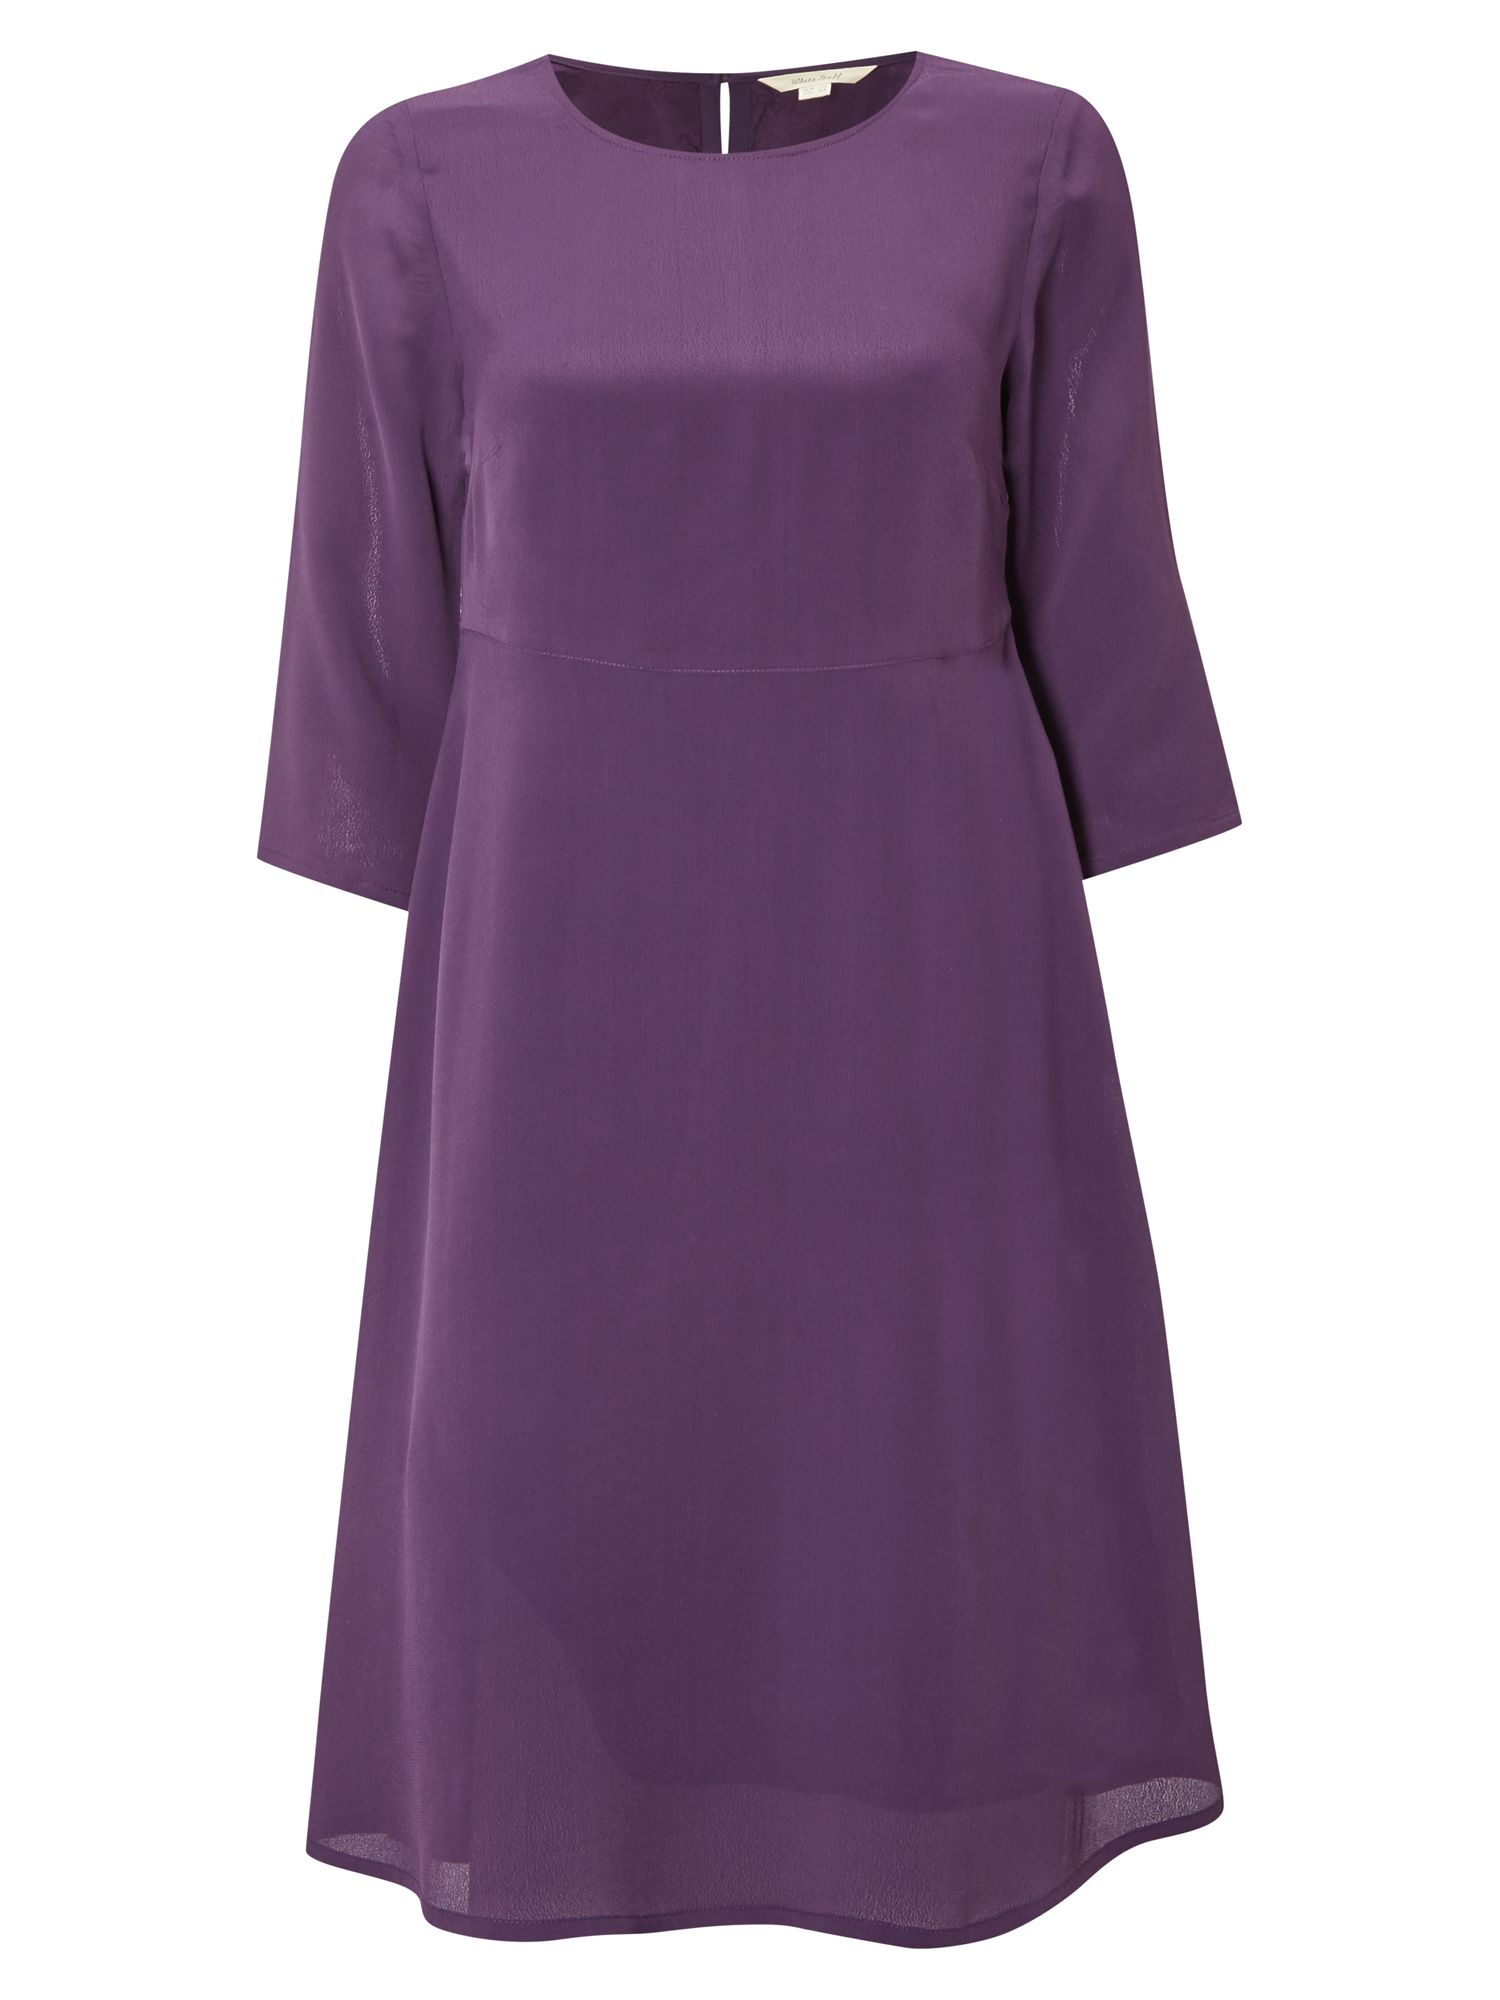 White Stuff Plain Nicole Dress, Purple